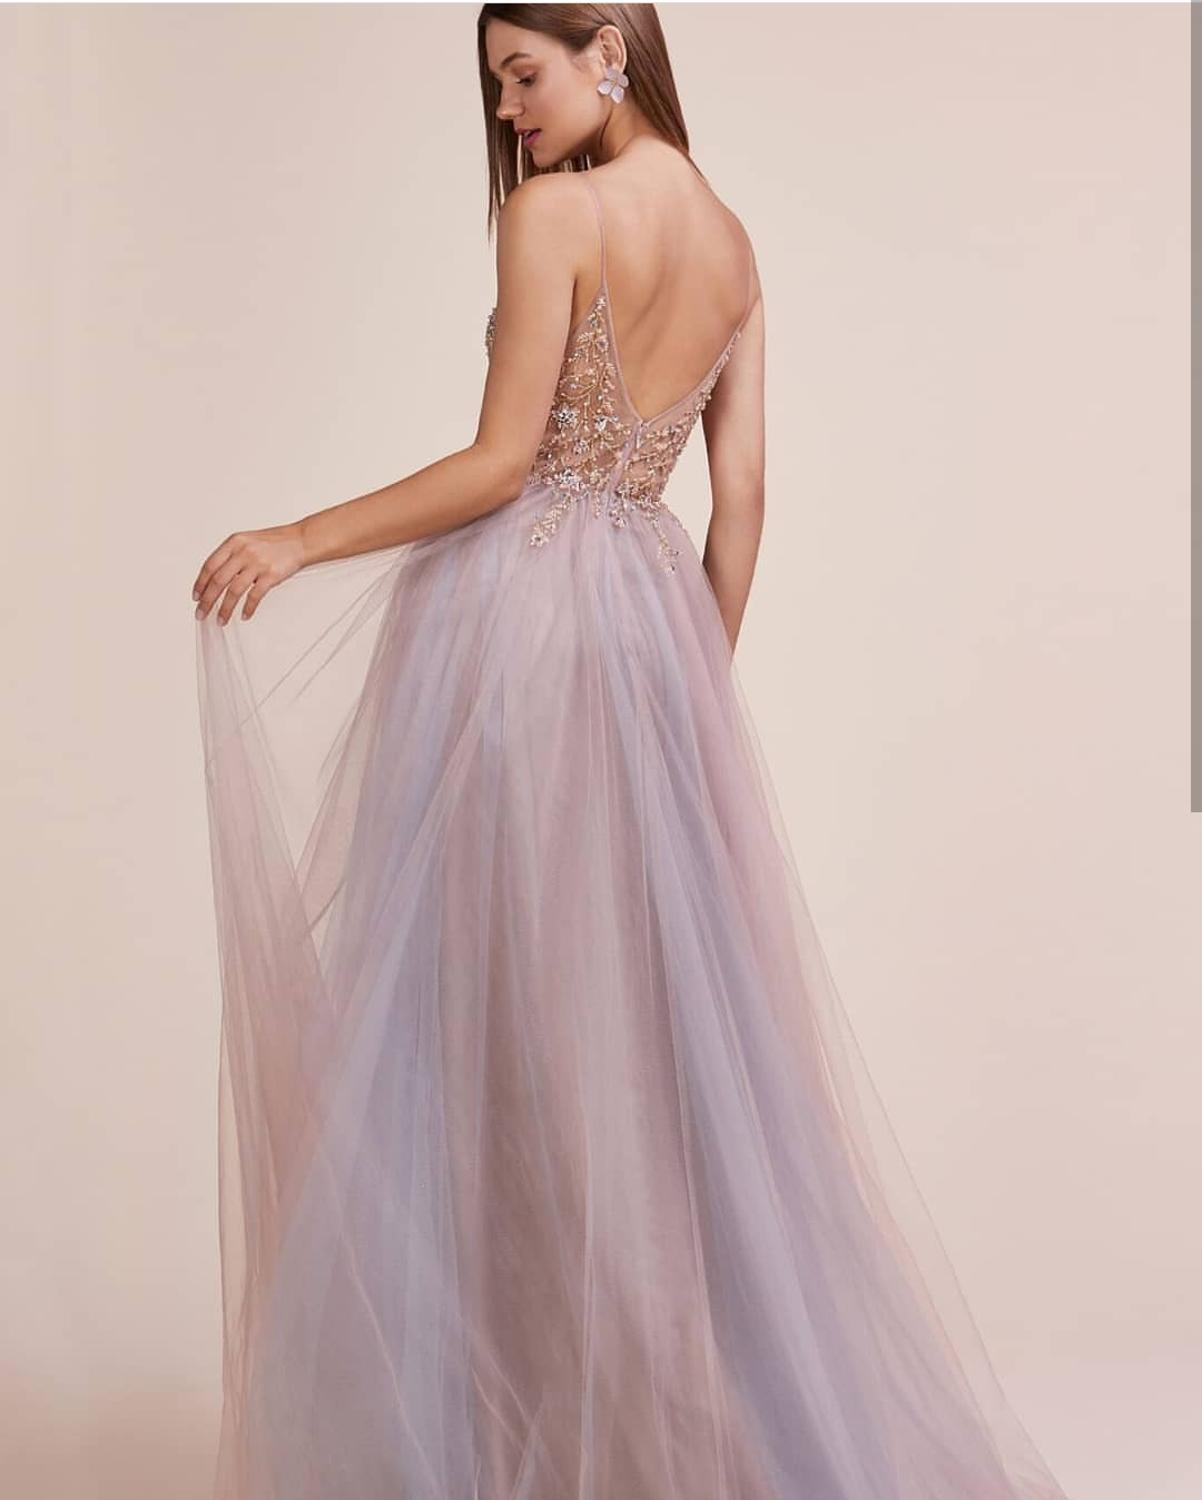 Prom Dress 2021 A-Line Pink Crystal Beaded Sleeveless Floor Length Side Slit Tulle Backless Women Formal Party Gowns Charming